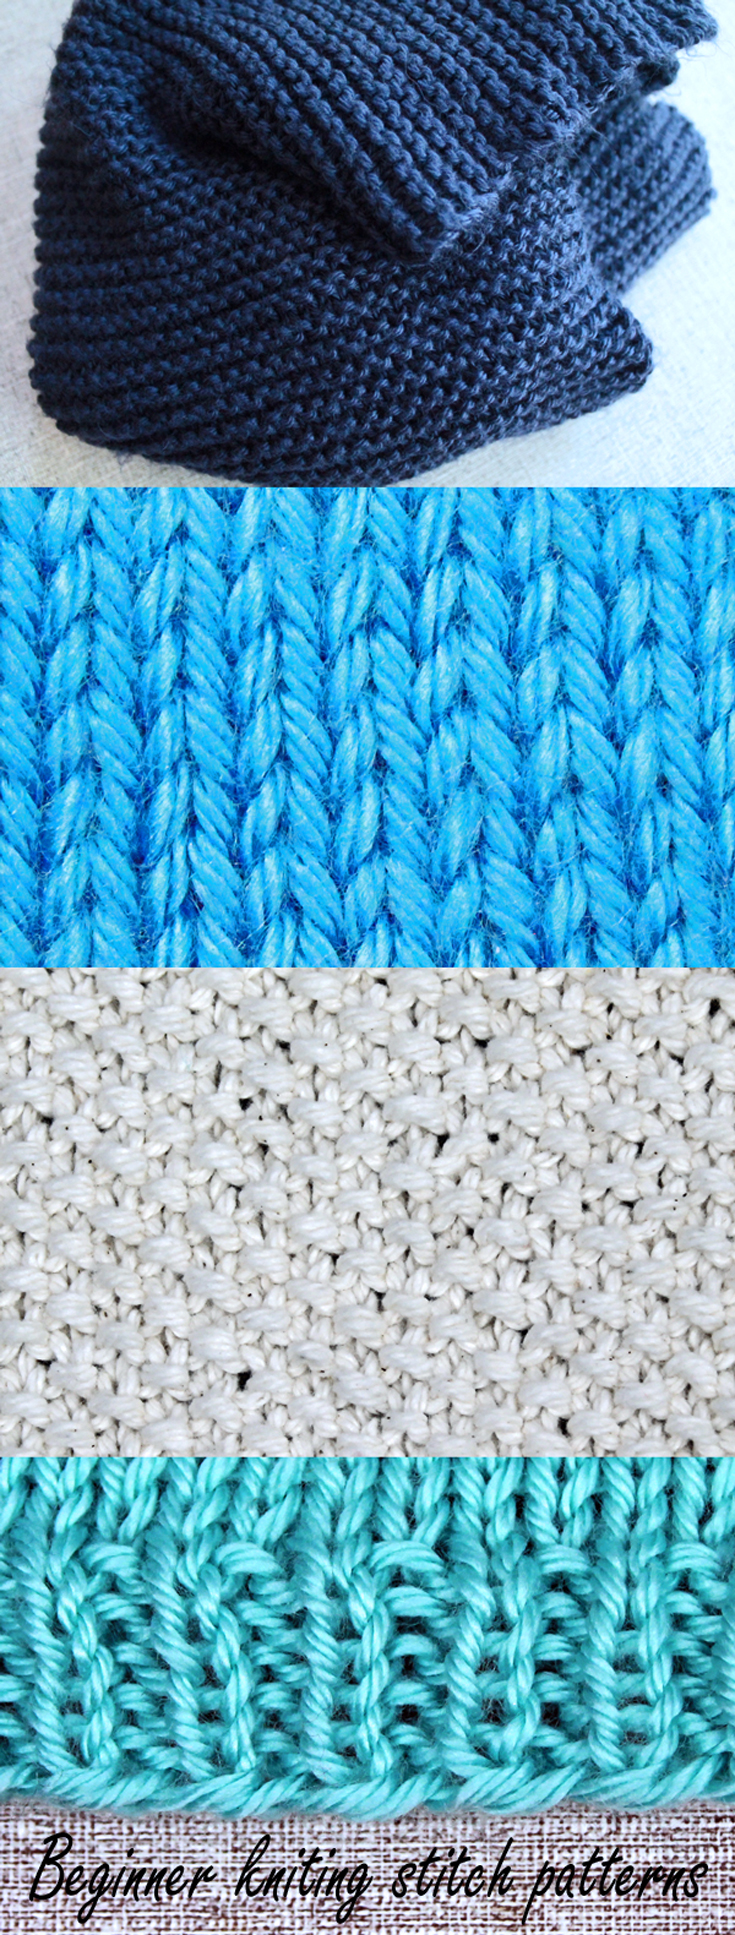 Knitting Jenny Basics : Beginner knitting stitch patterns purlsandpixels